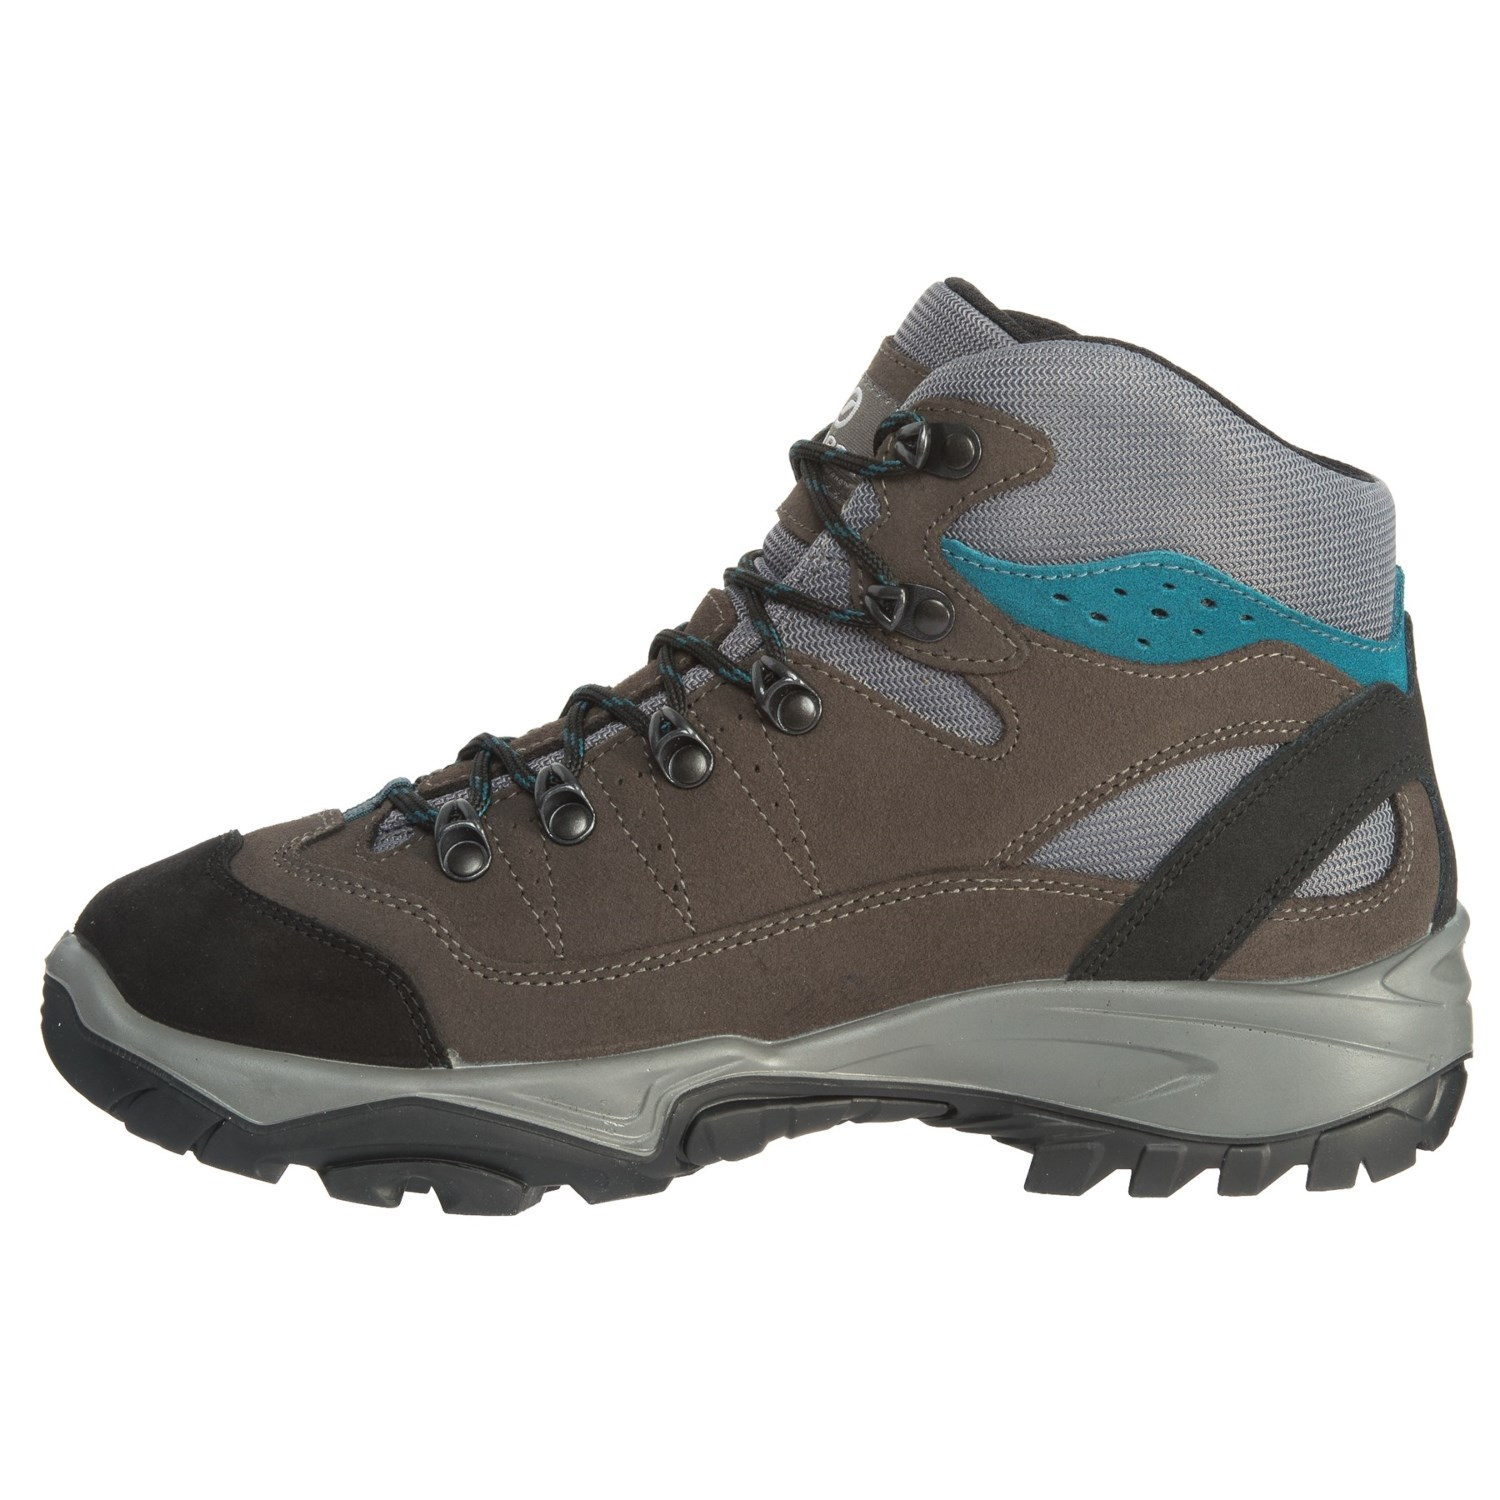 8e2d5326fe0 Scarpa Made in Europe Mistral Gore-Tex® Hiking Boots - Waterproof (For Men)